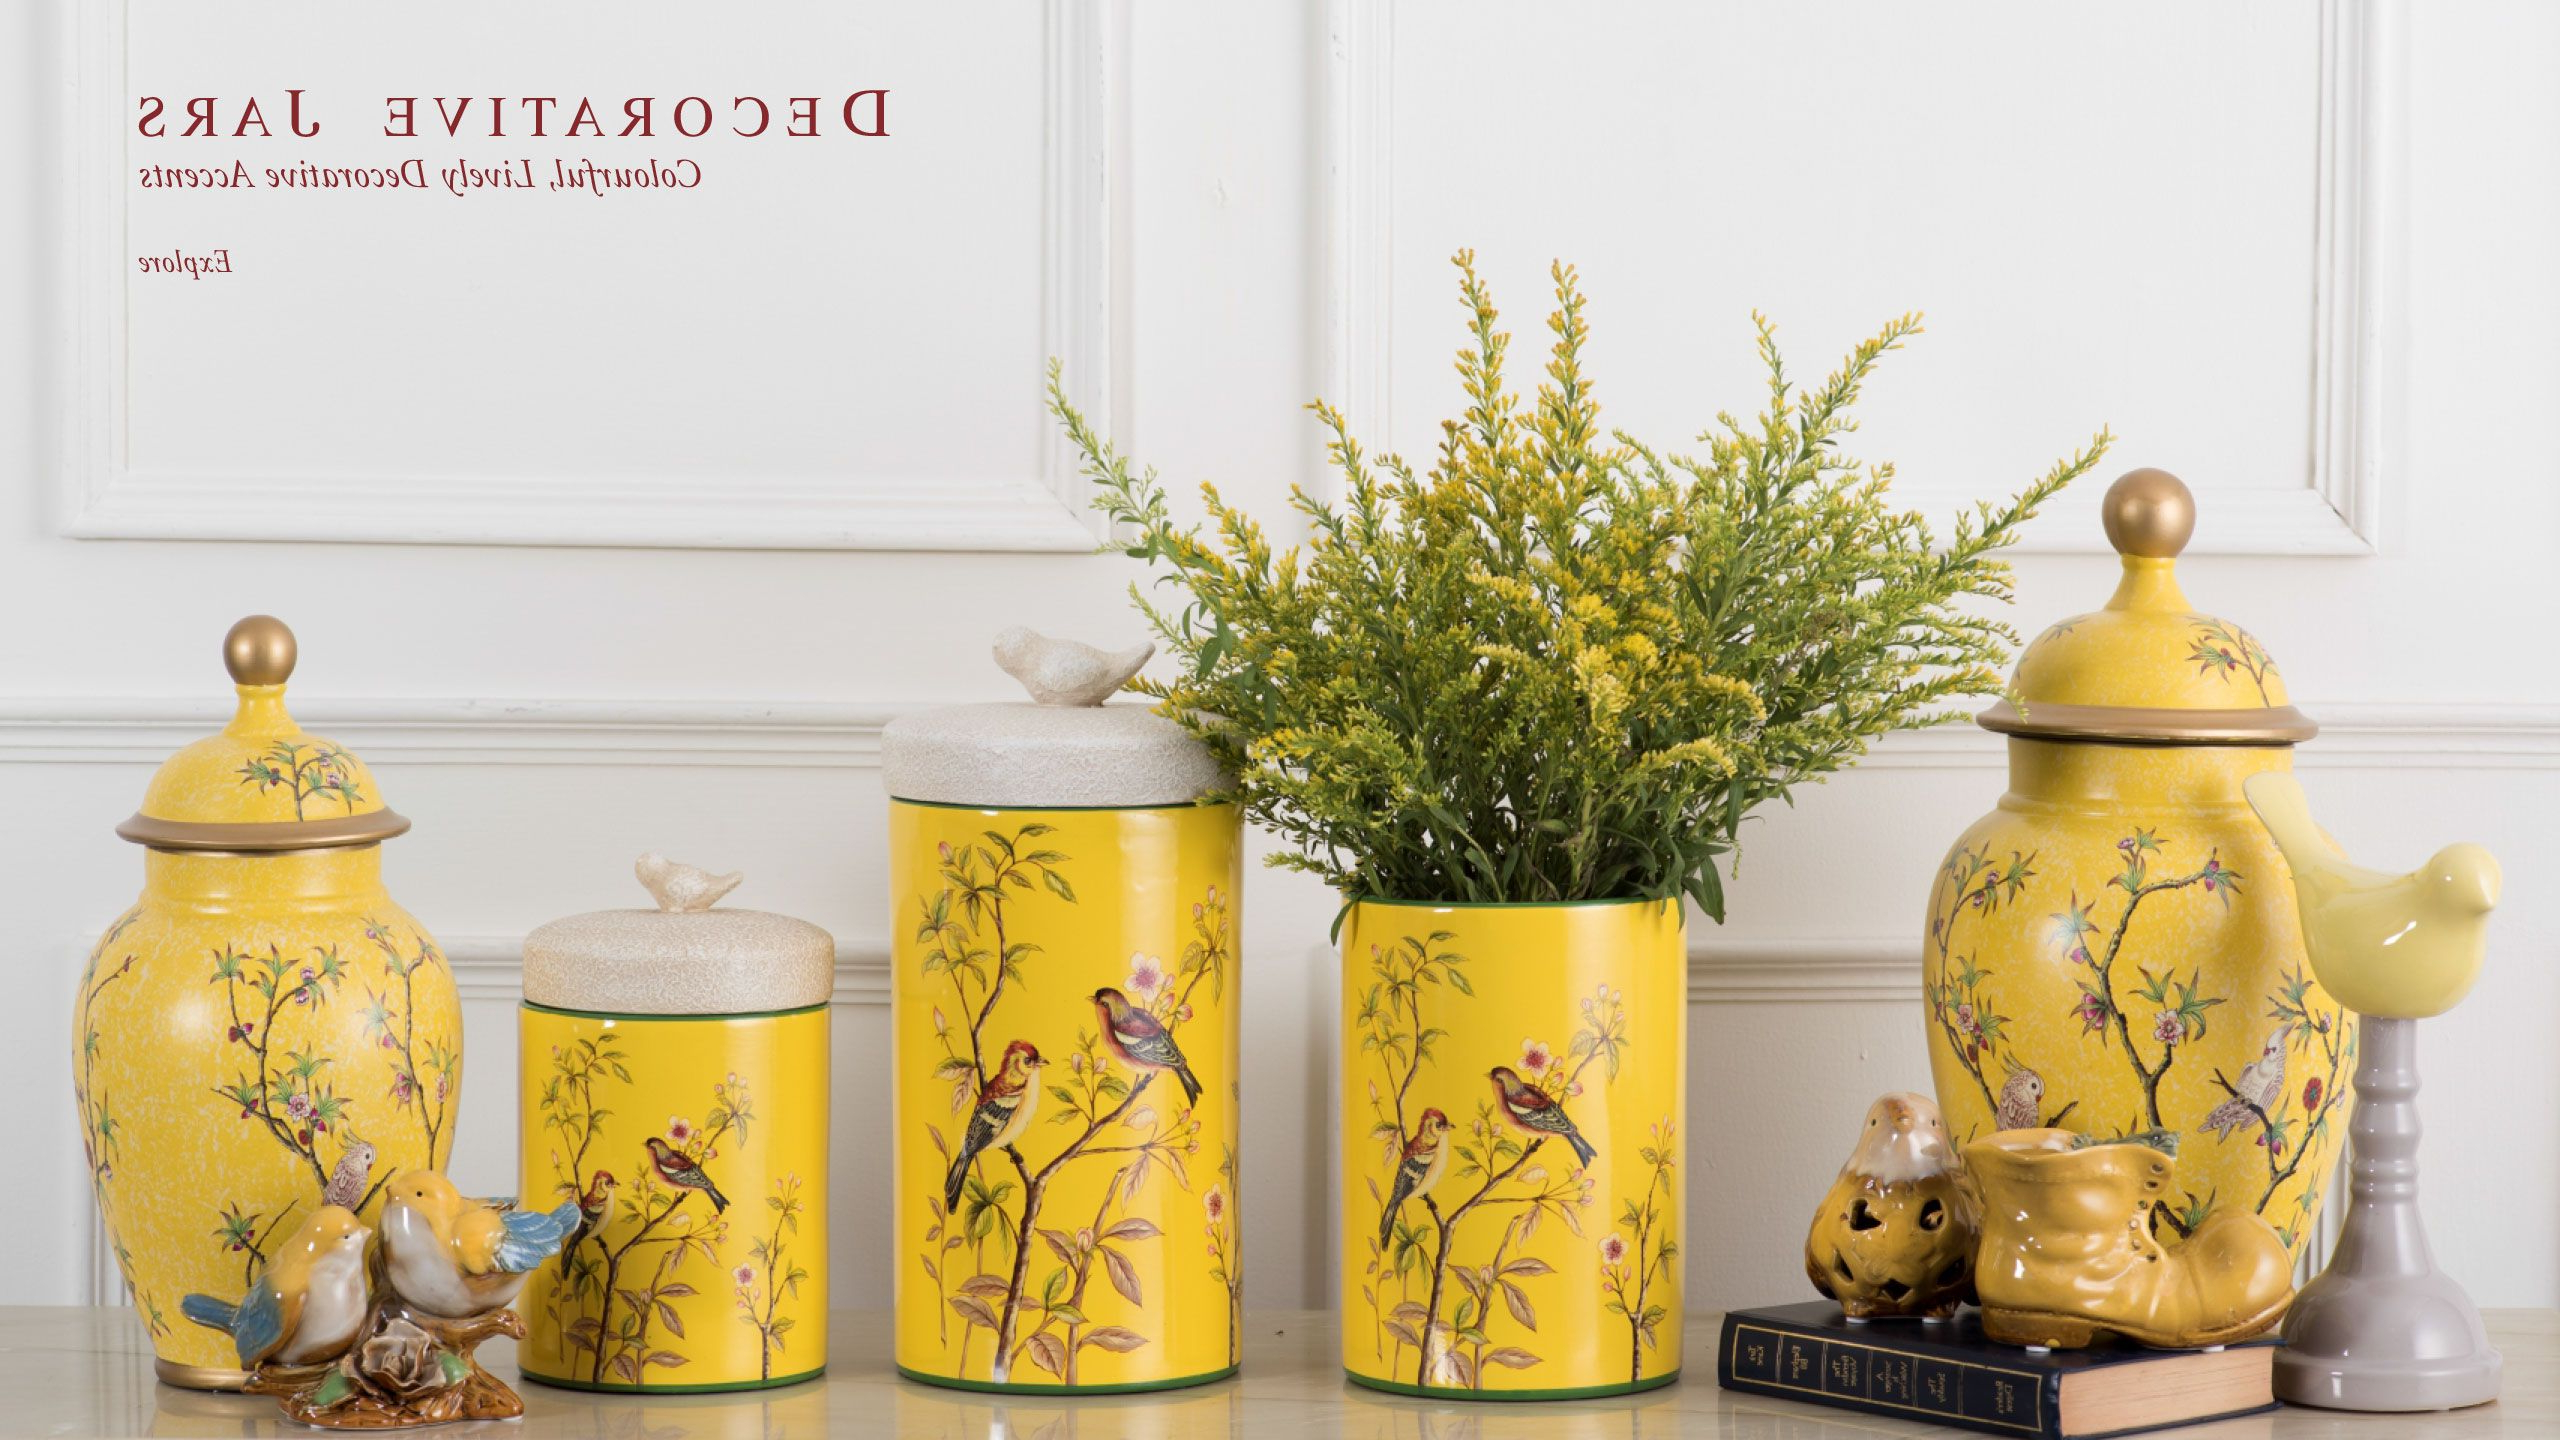 Newest Ceramic Stools Have Become A Popular Decorating Accessory Intended For Maci Tropical Birds Garden Stools (View 17 of 30)